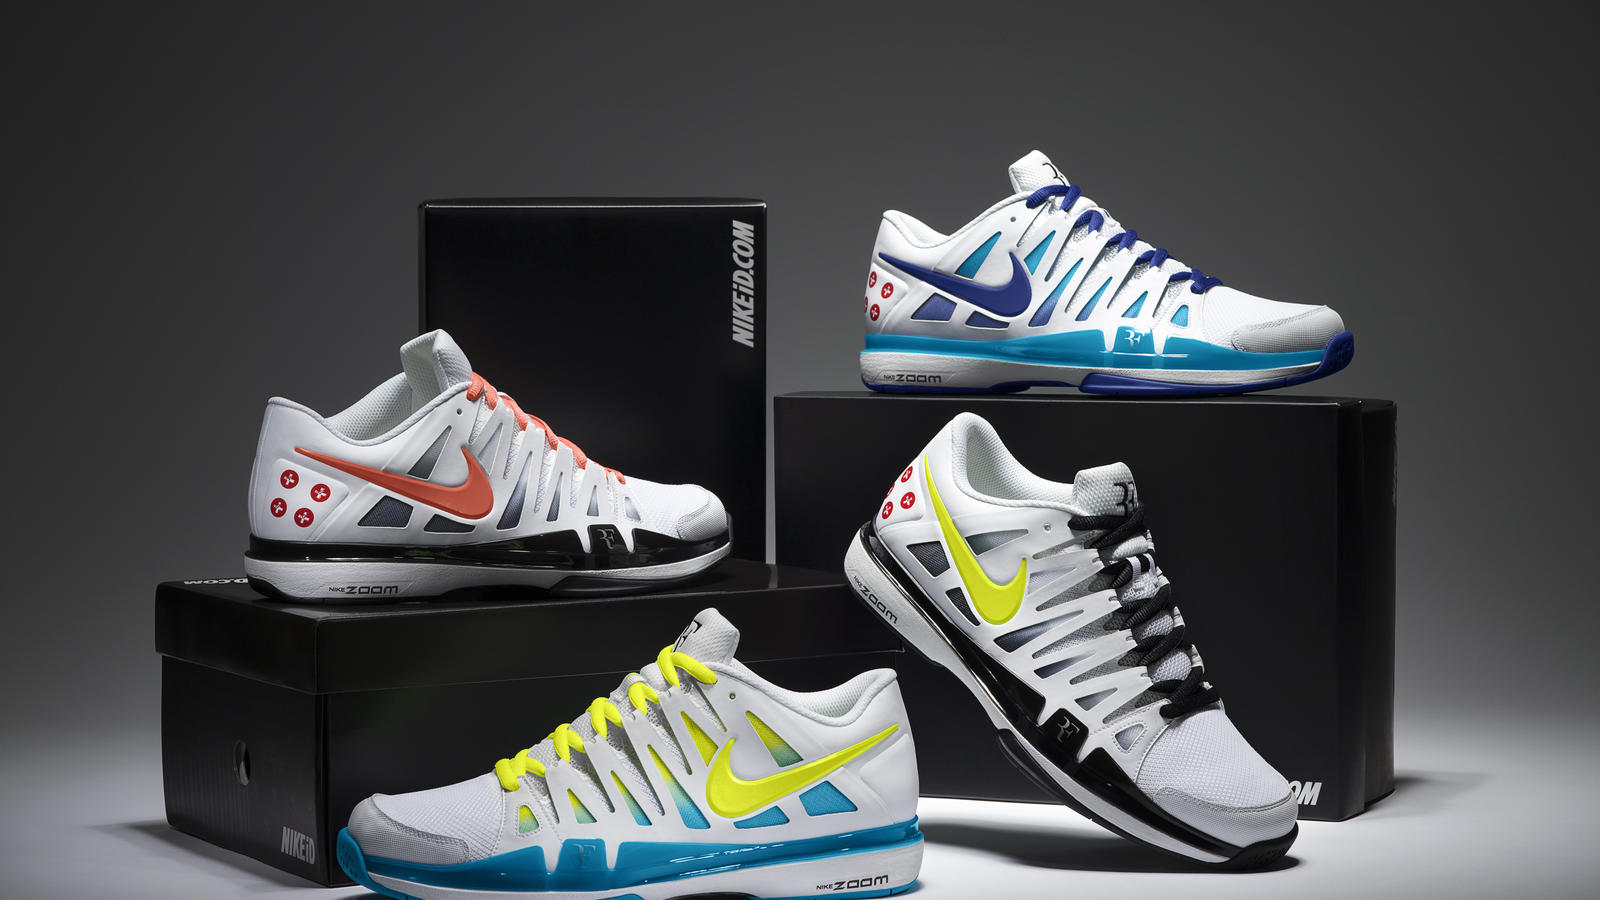 Roger_NIKEiD_Australian_Open_2013_GROUP